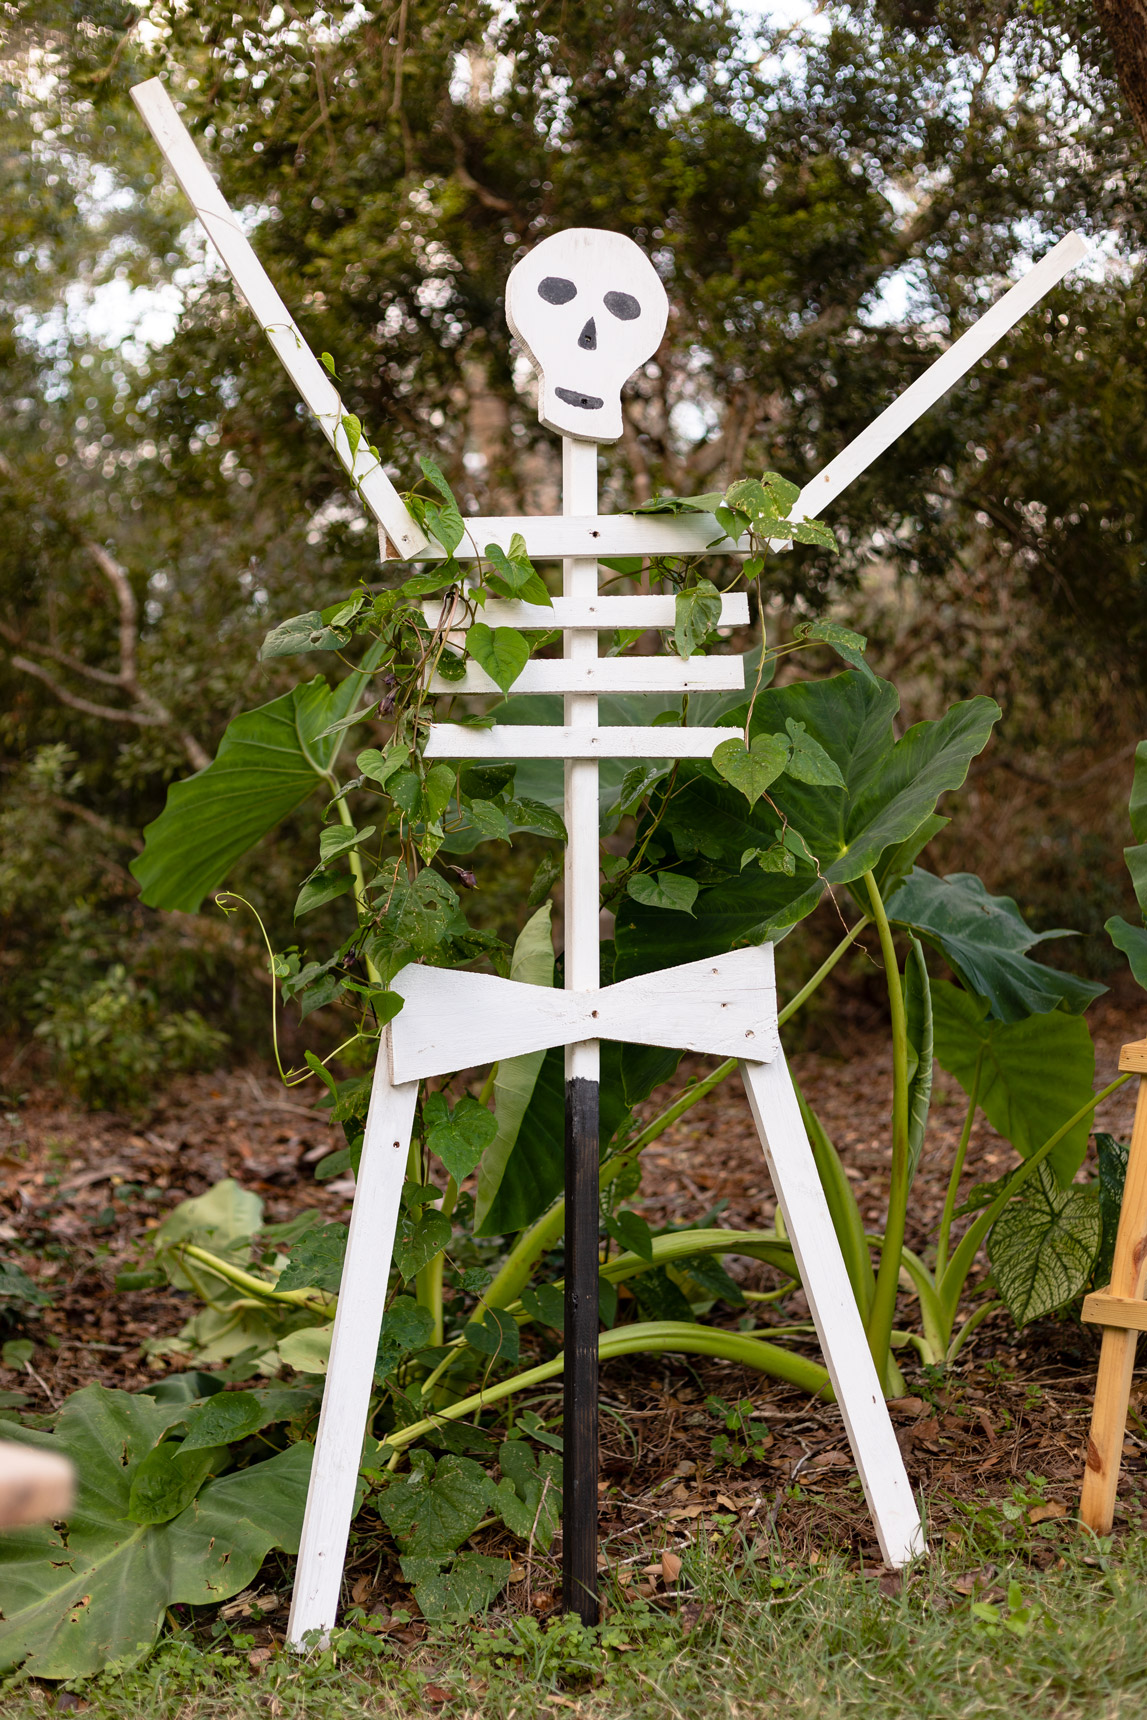 How to Make a Wooden Skeleton